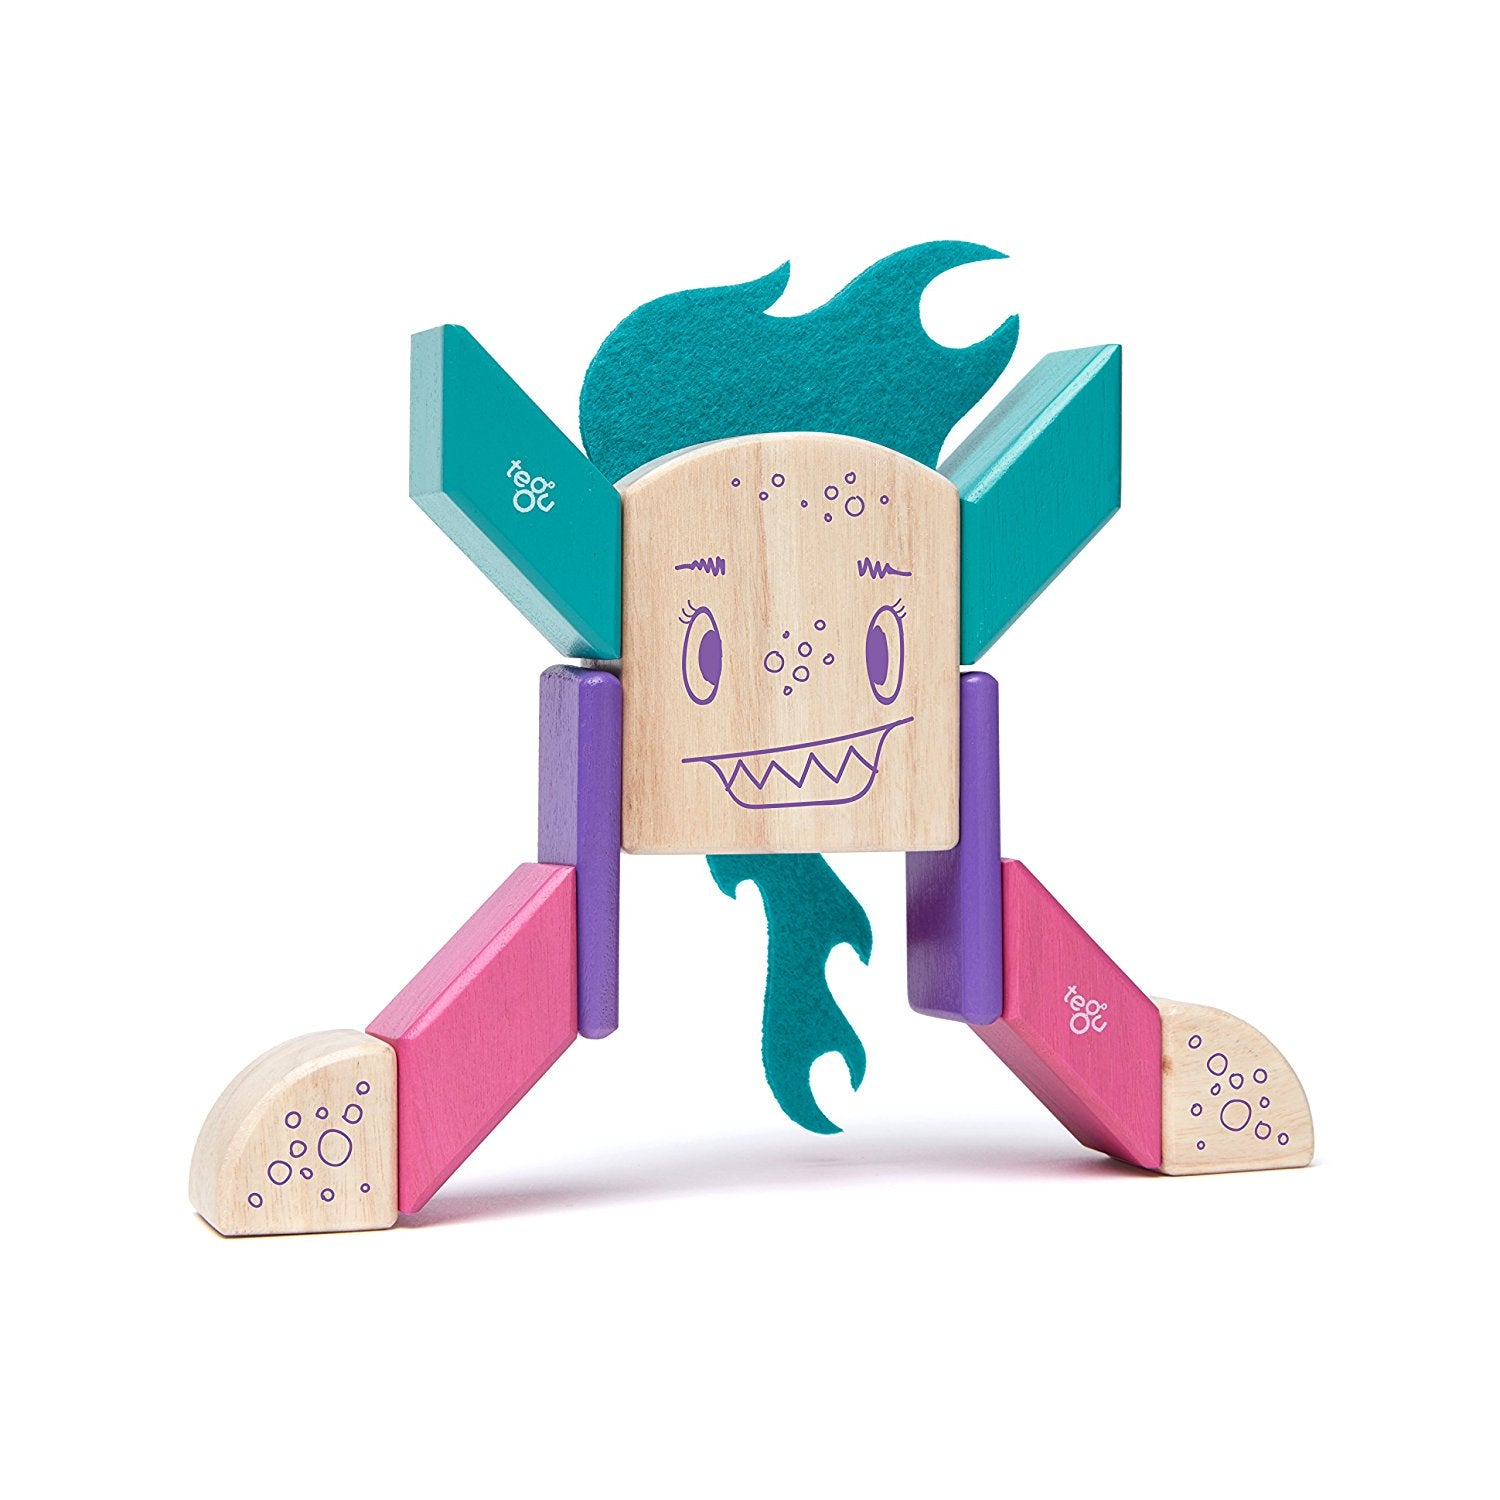 Tegu FINKLEBEAR Magnetic Wooden Block Set - WoodenToys.com